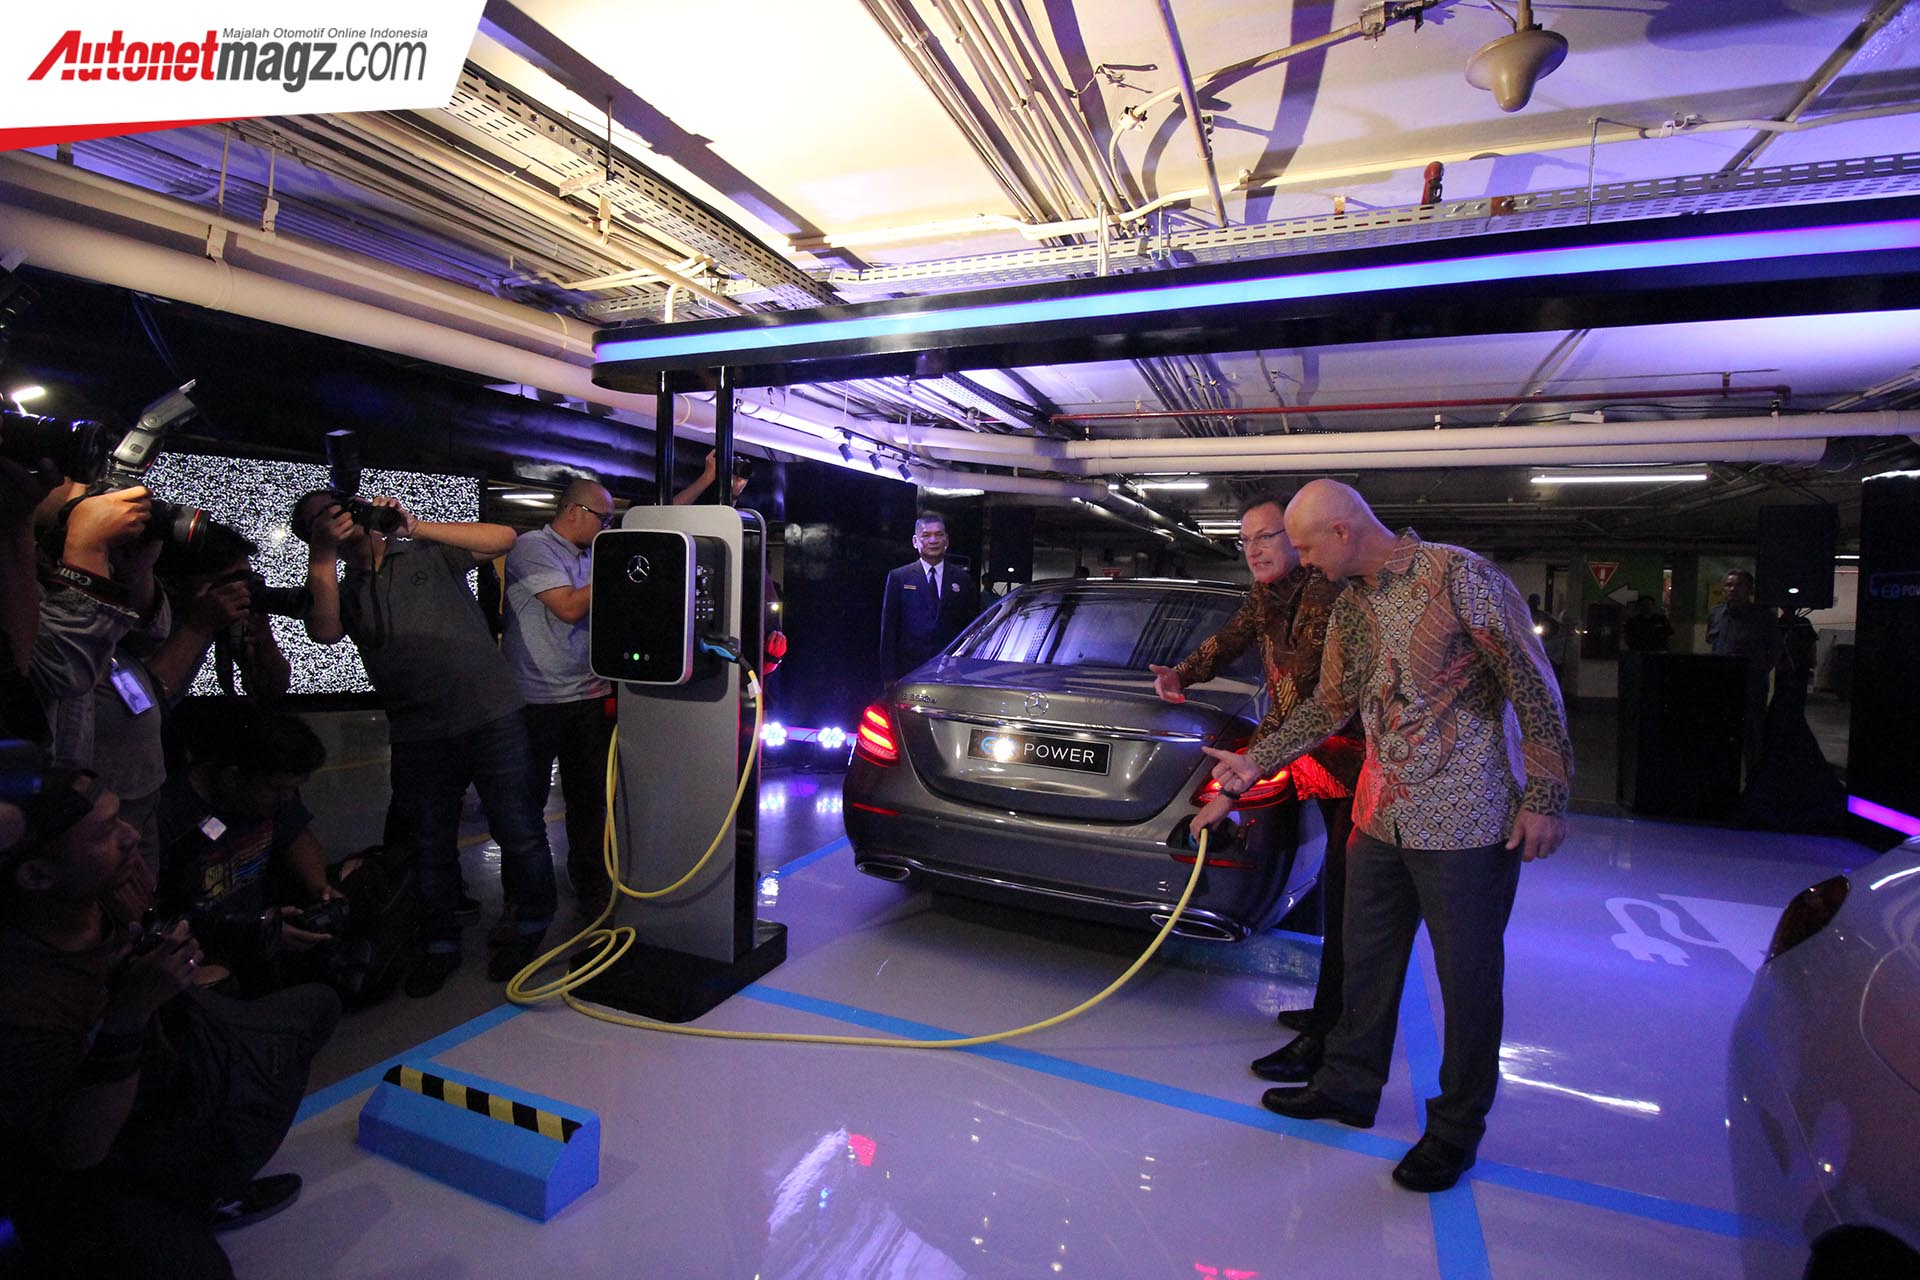 Berita, EQ Power Charging Mercedes-Benz di Plaza indonesia: Privilege Parking Dengan EQ Power Charging Mercedes-Benz Dirilis Di Jakarta